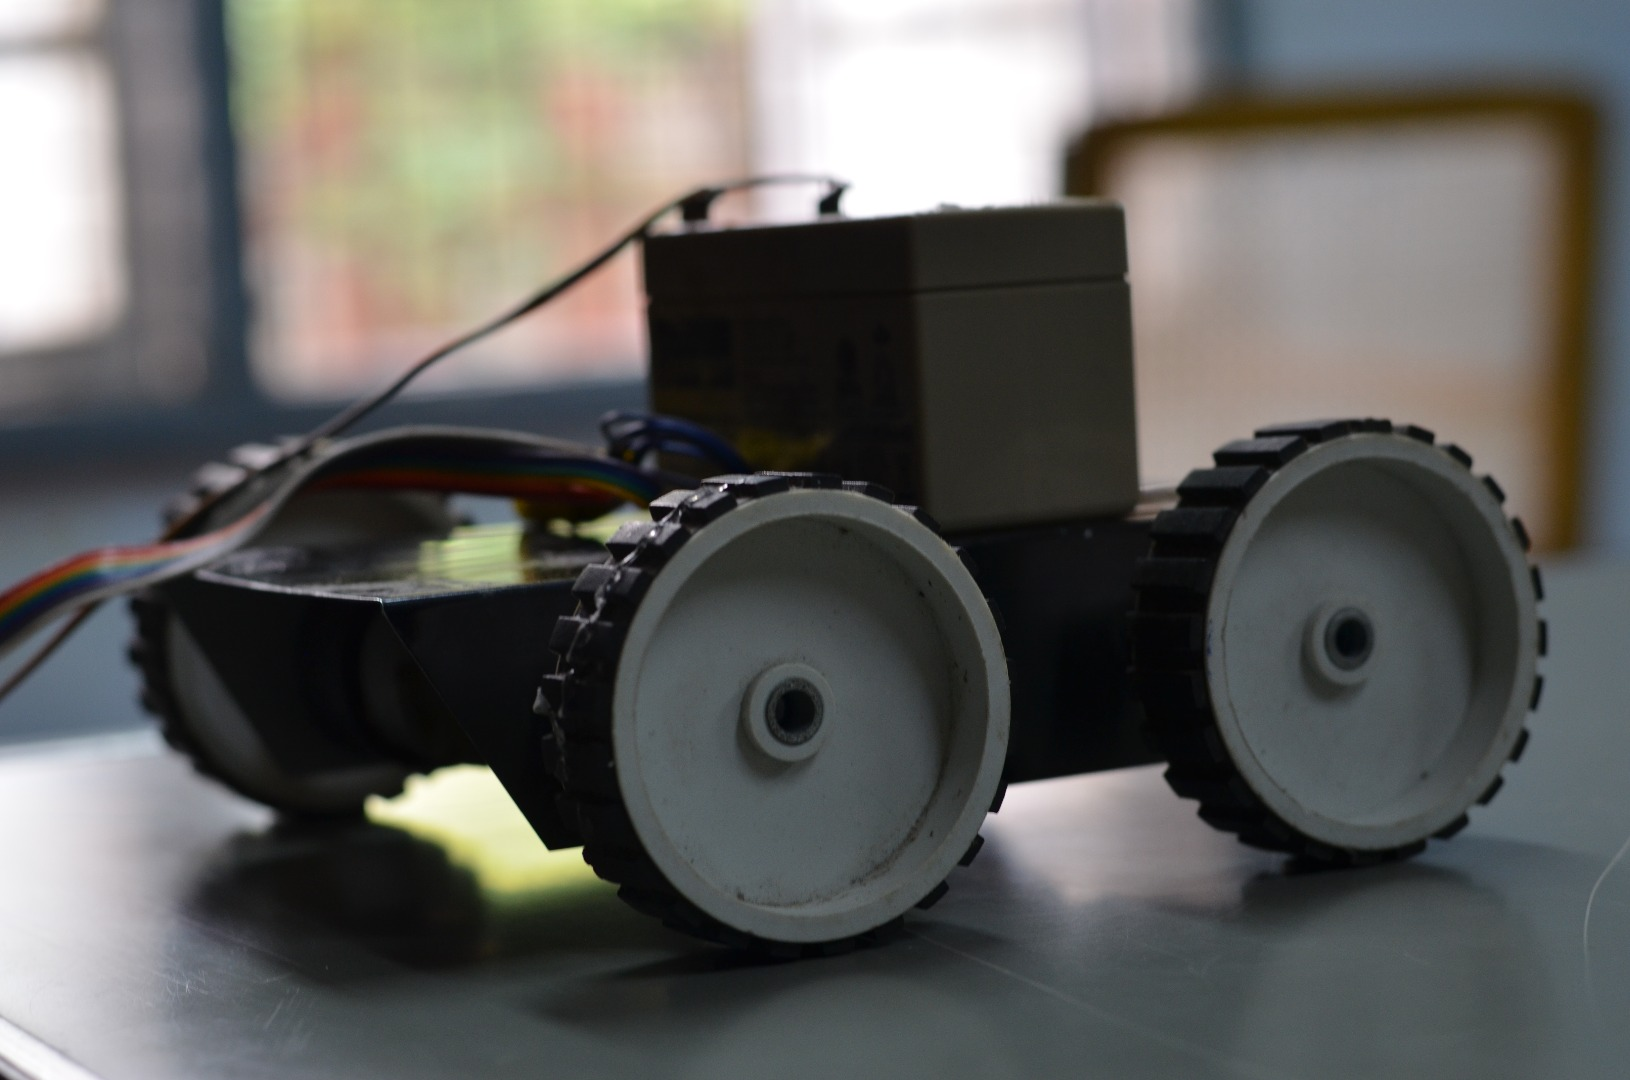 Wired Controlled Manual Robot: 8 Steps